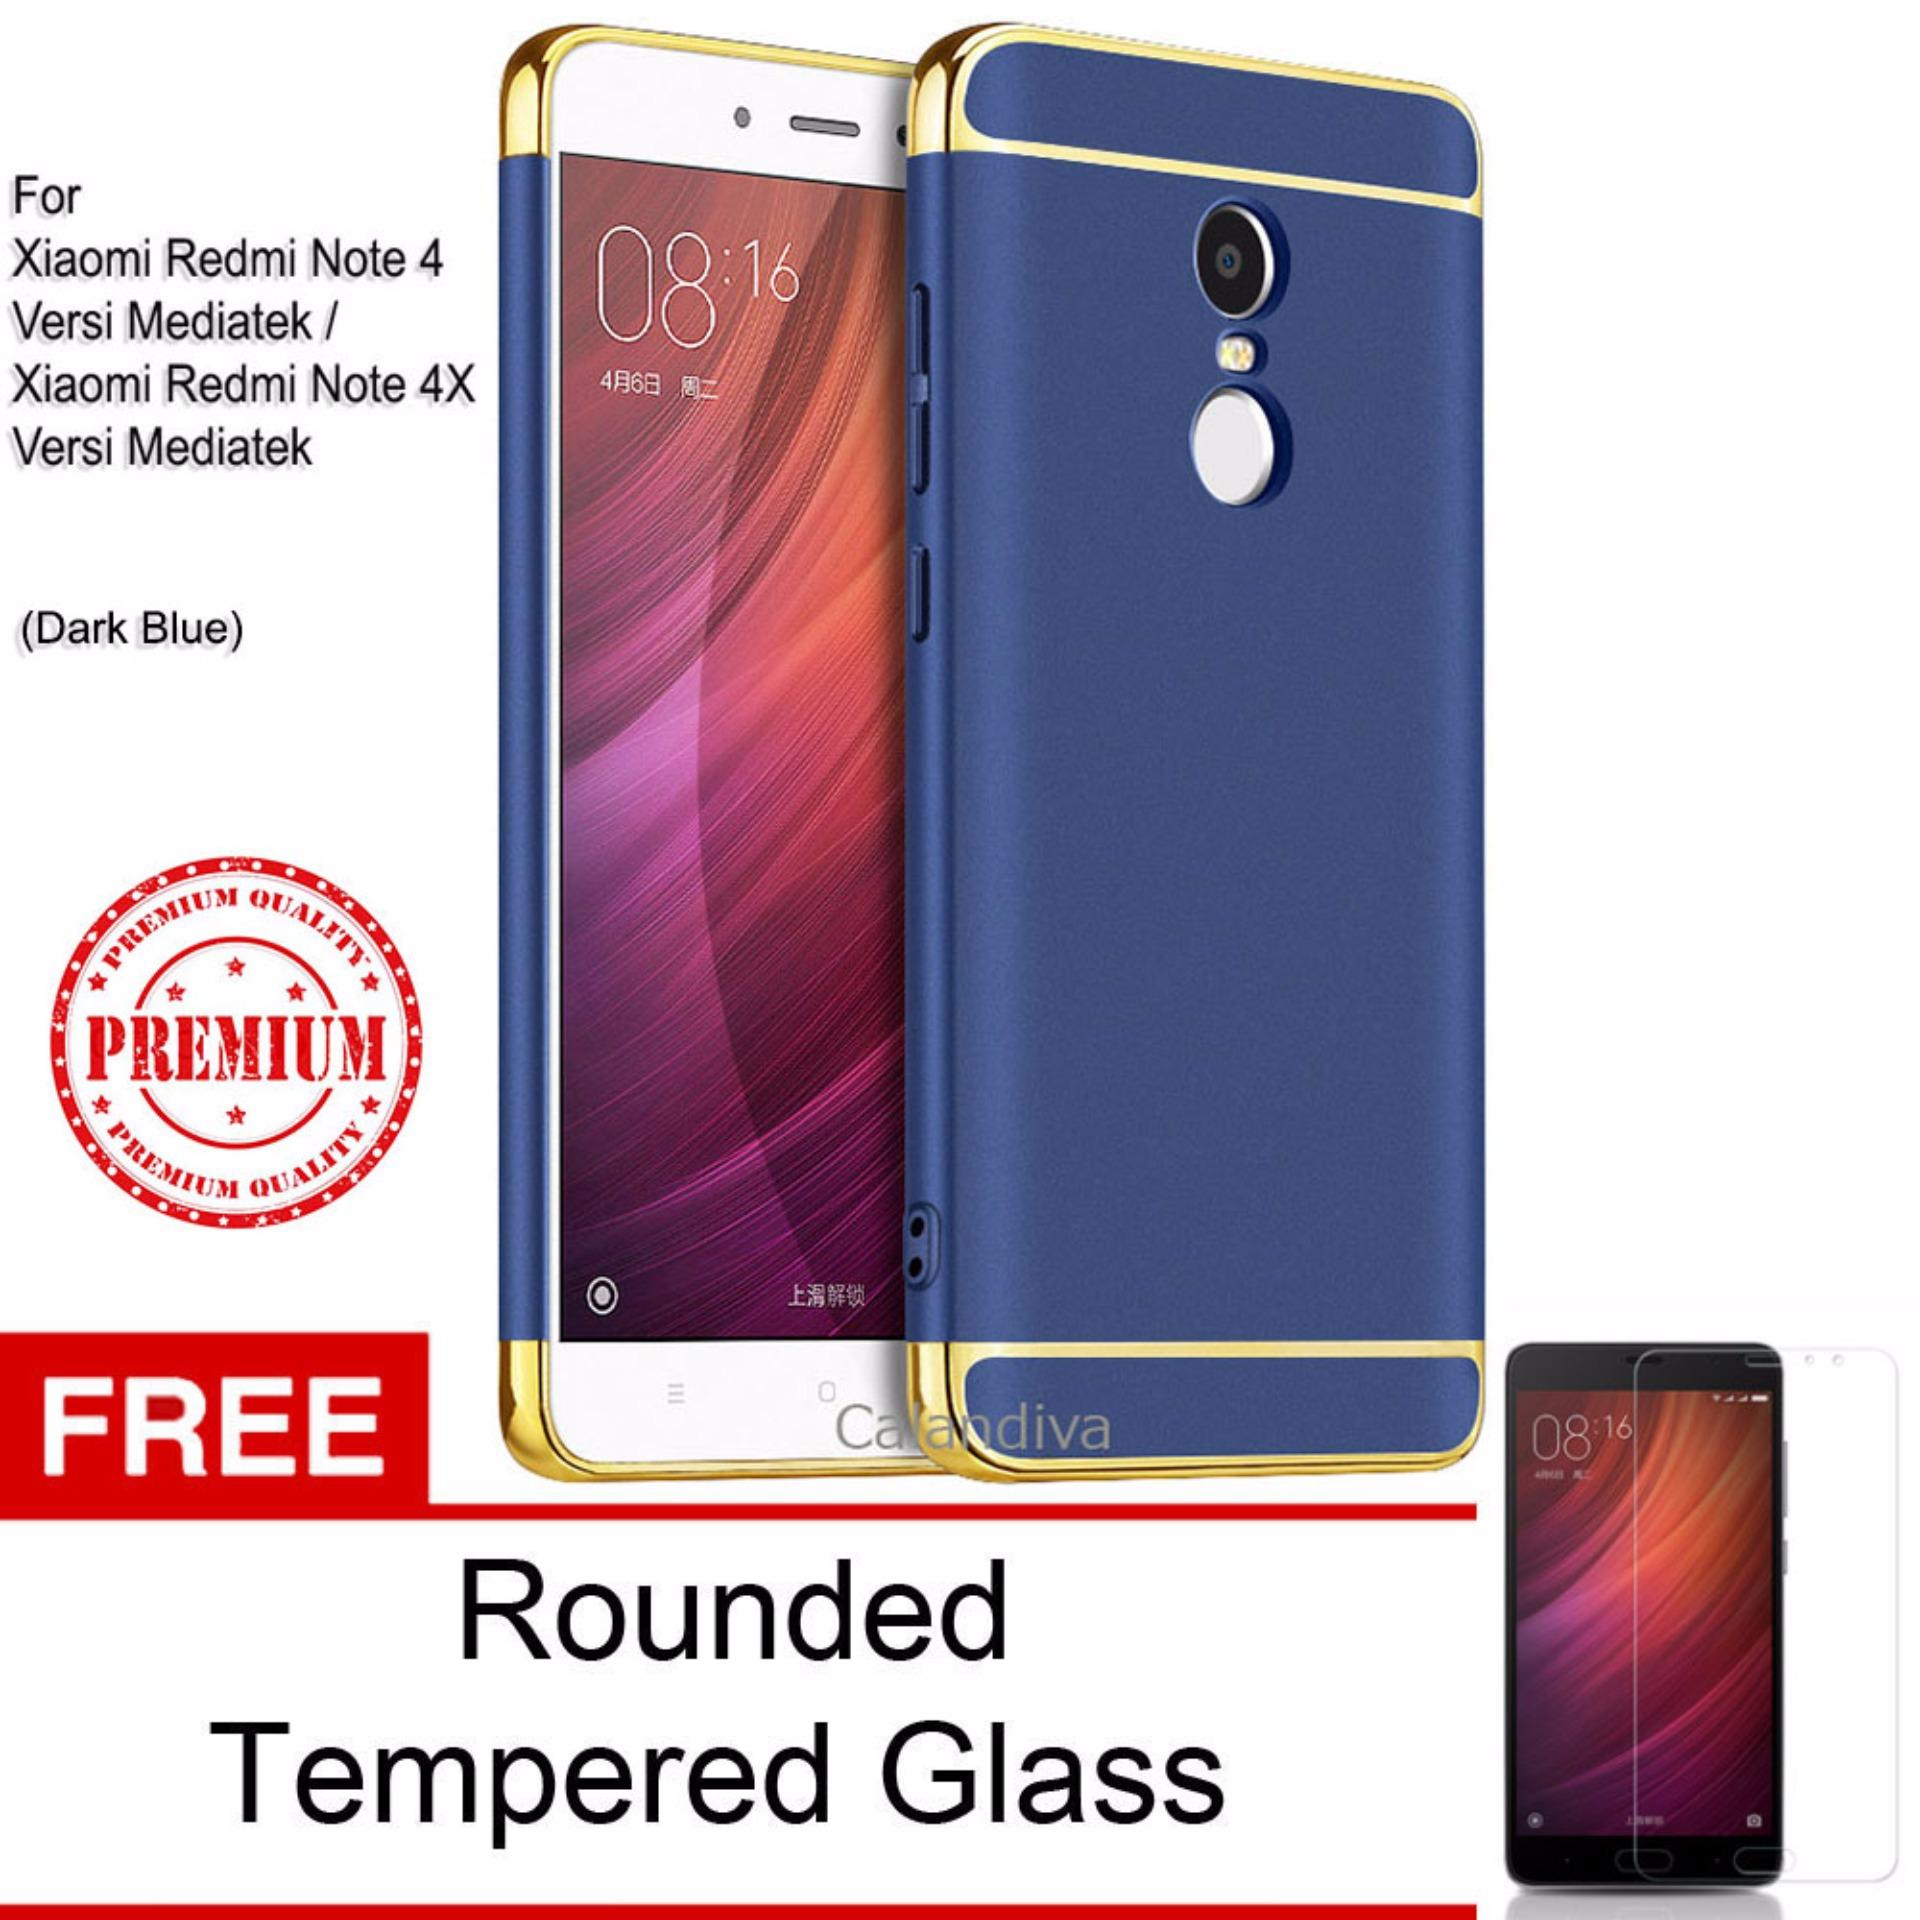 ... Calandiva Premium Quality Elegance Protection Hardcase for Xiaomi Redmi Note 4 Mediatek / Redmi Note 4x ...